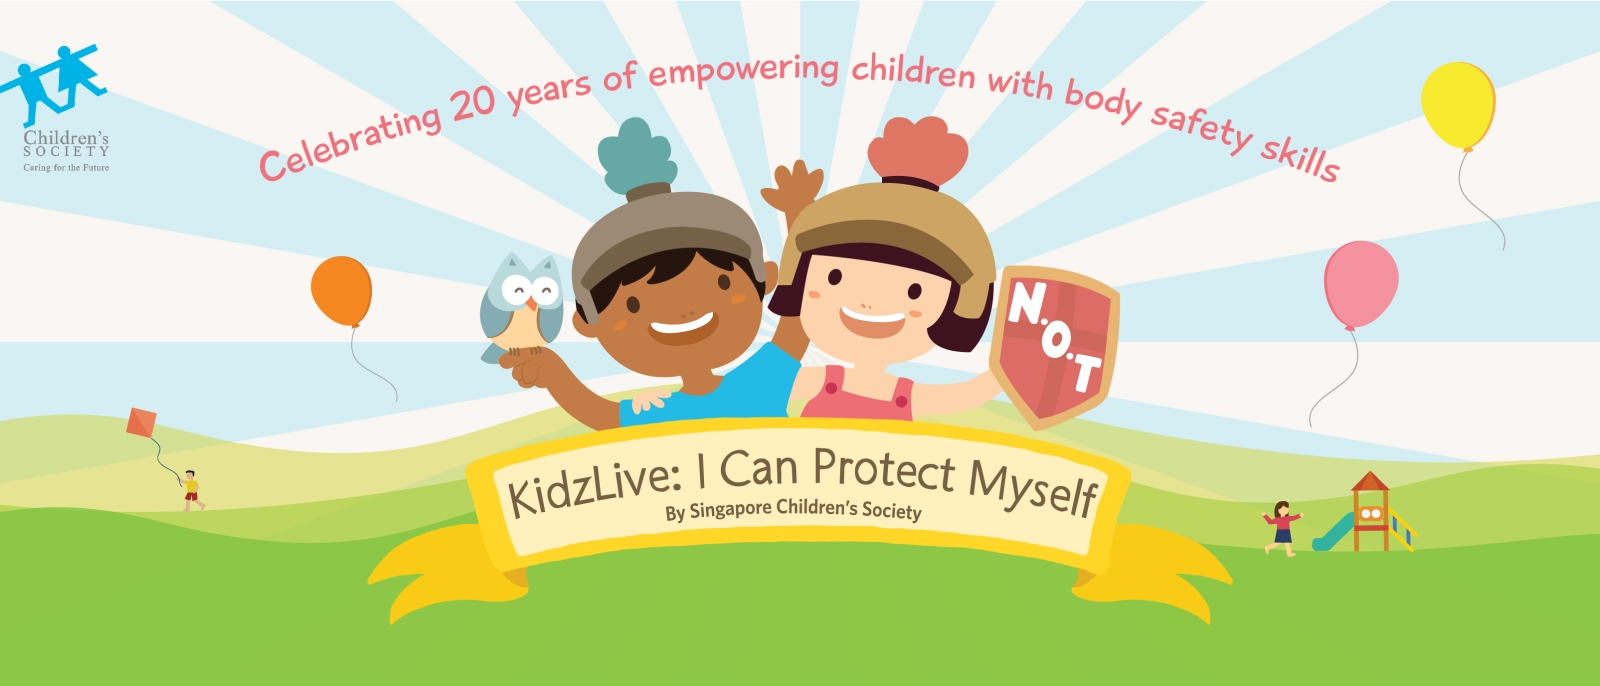 KidzLive 20th Anniversary - Singapore Children's Society